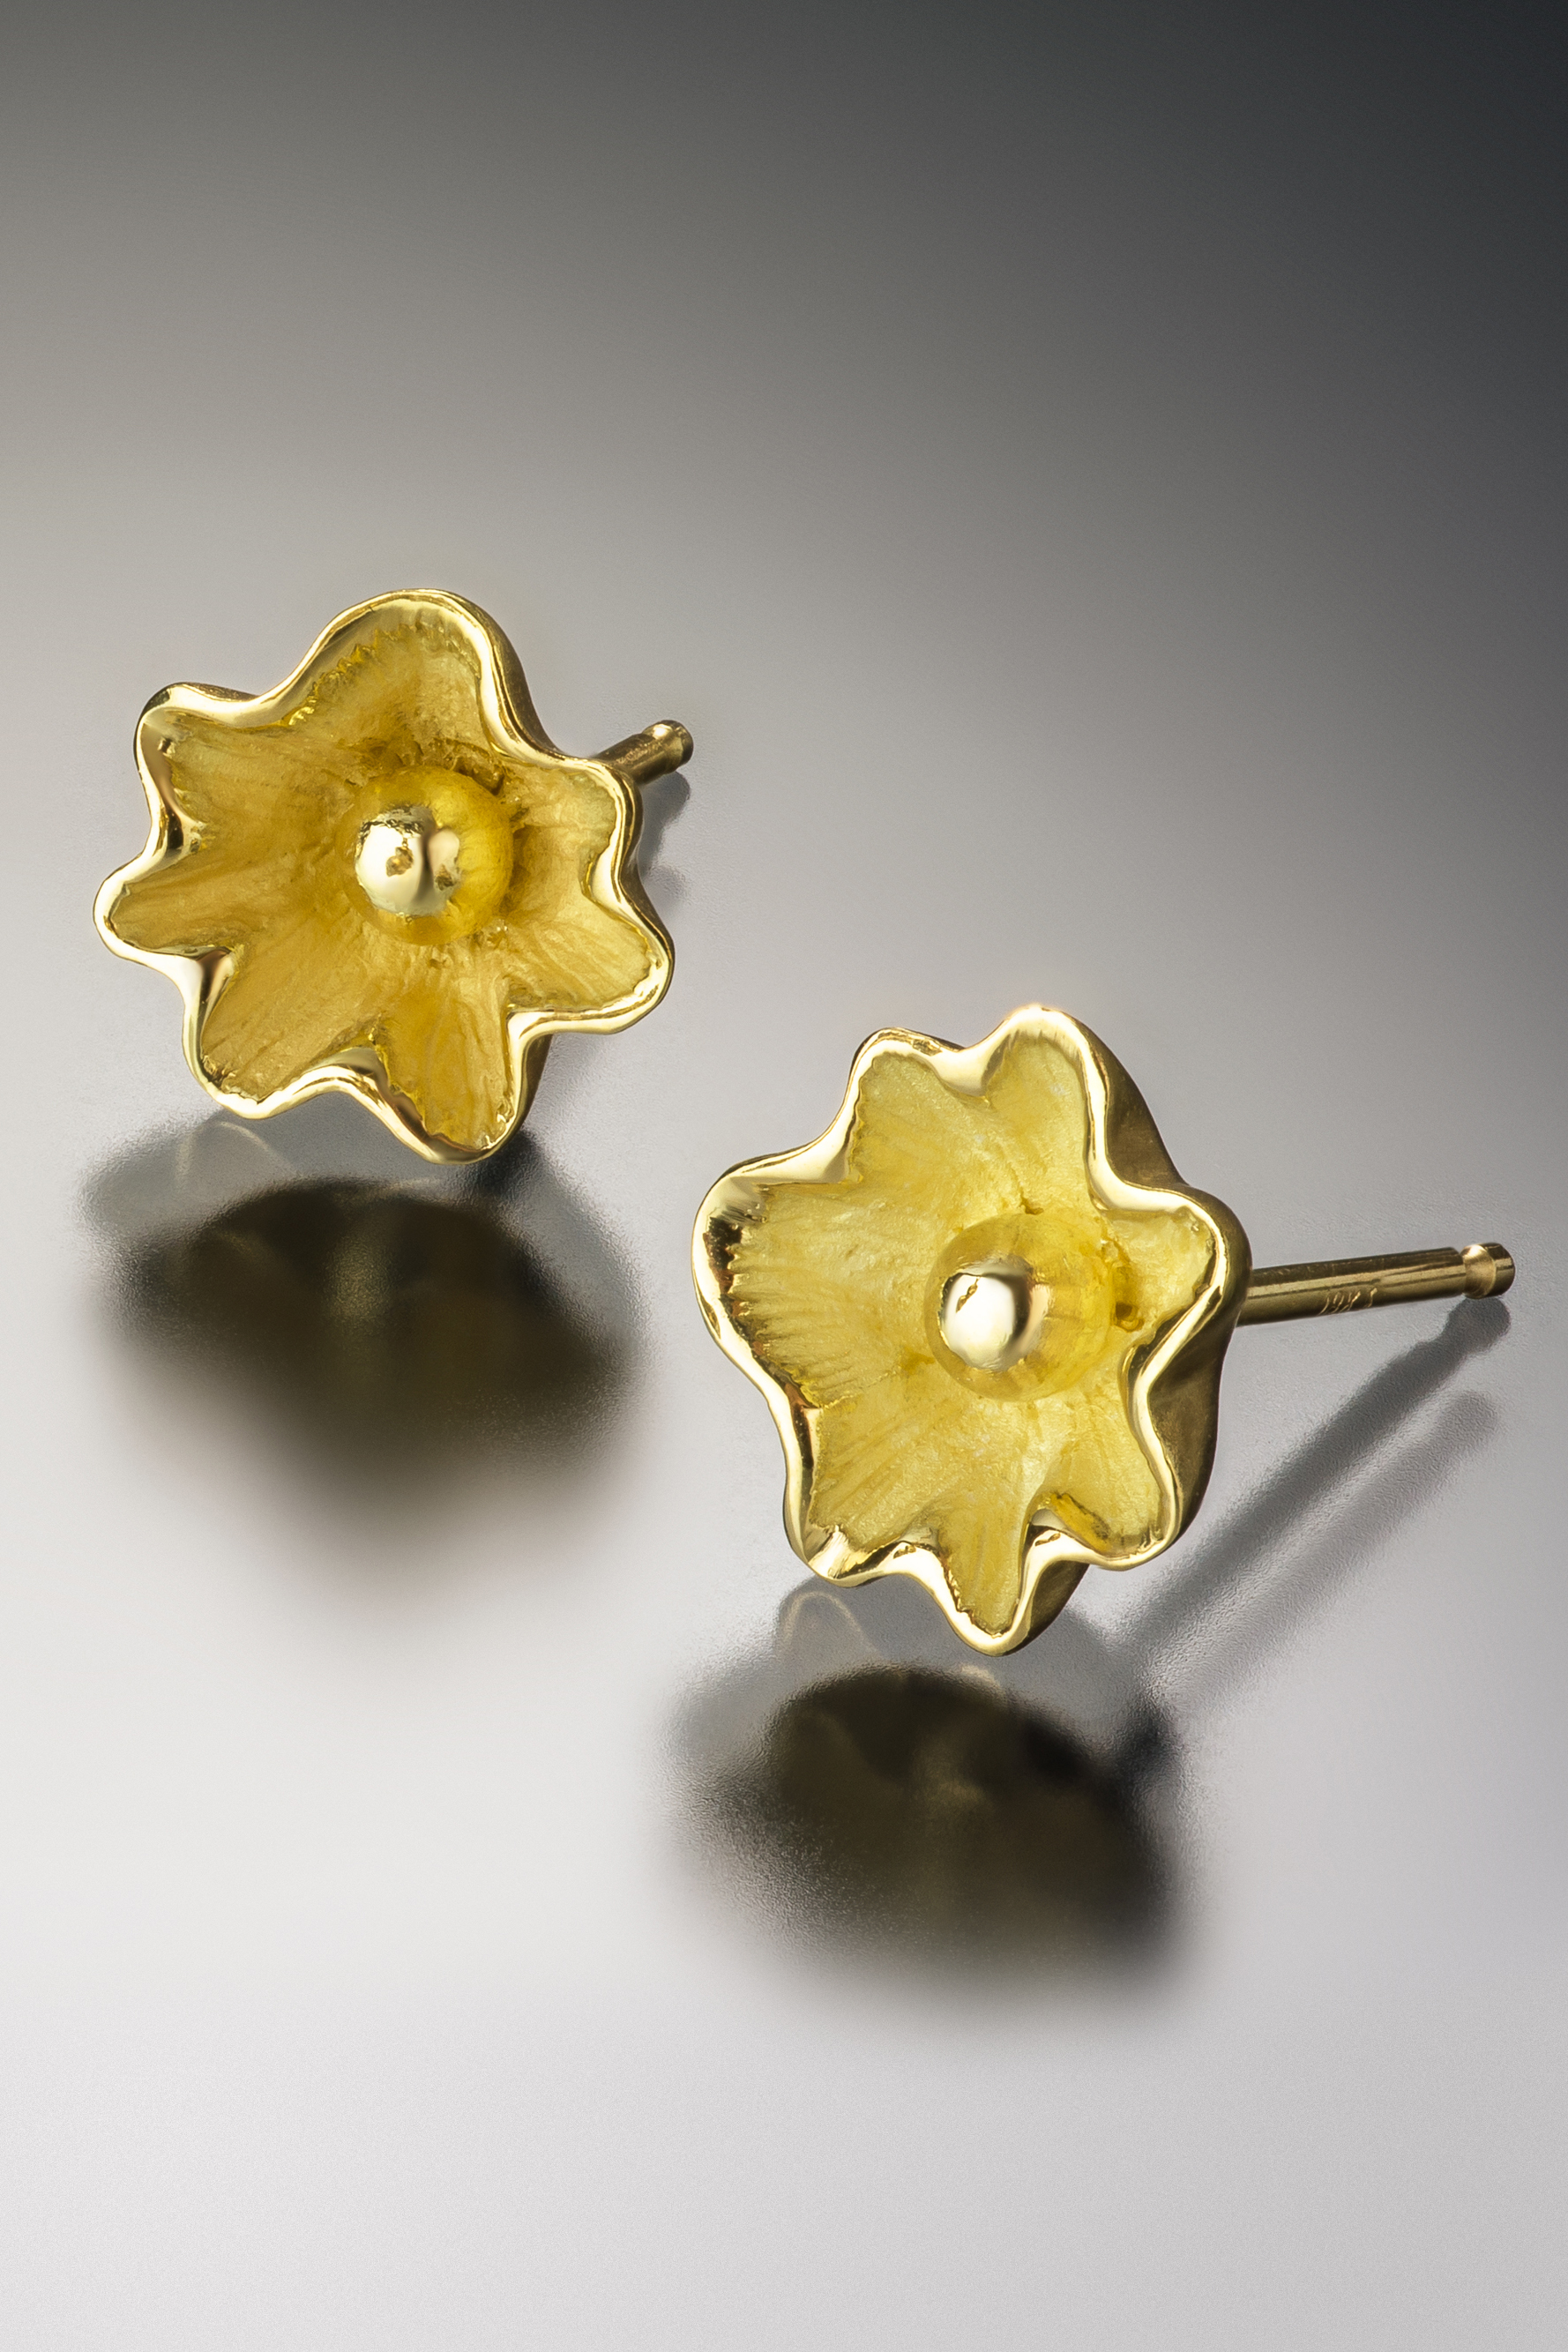 Coral sea flower single studs in 18k gold natalie reed designs 59500 mightylinksfo